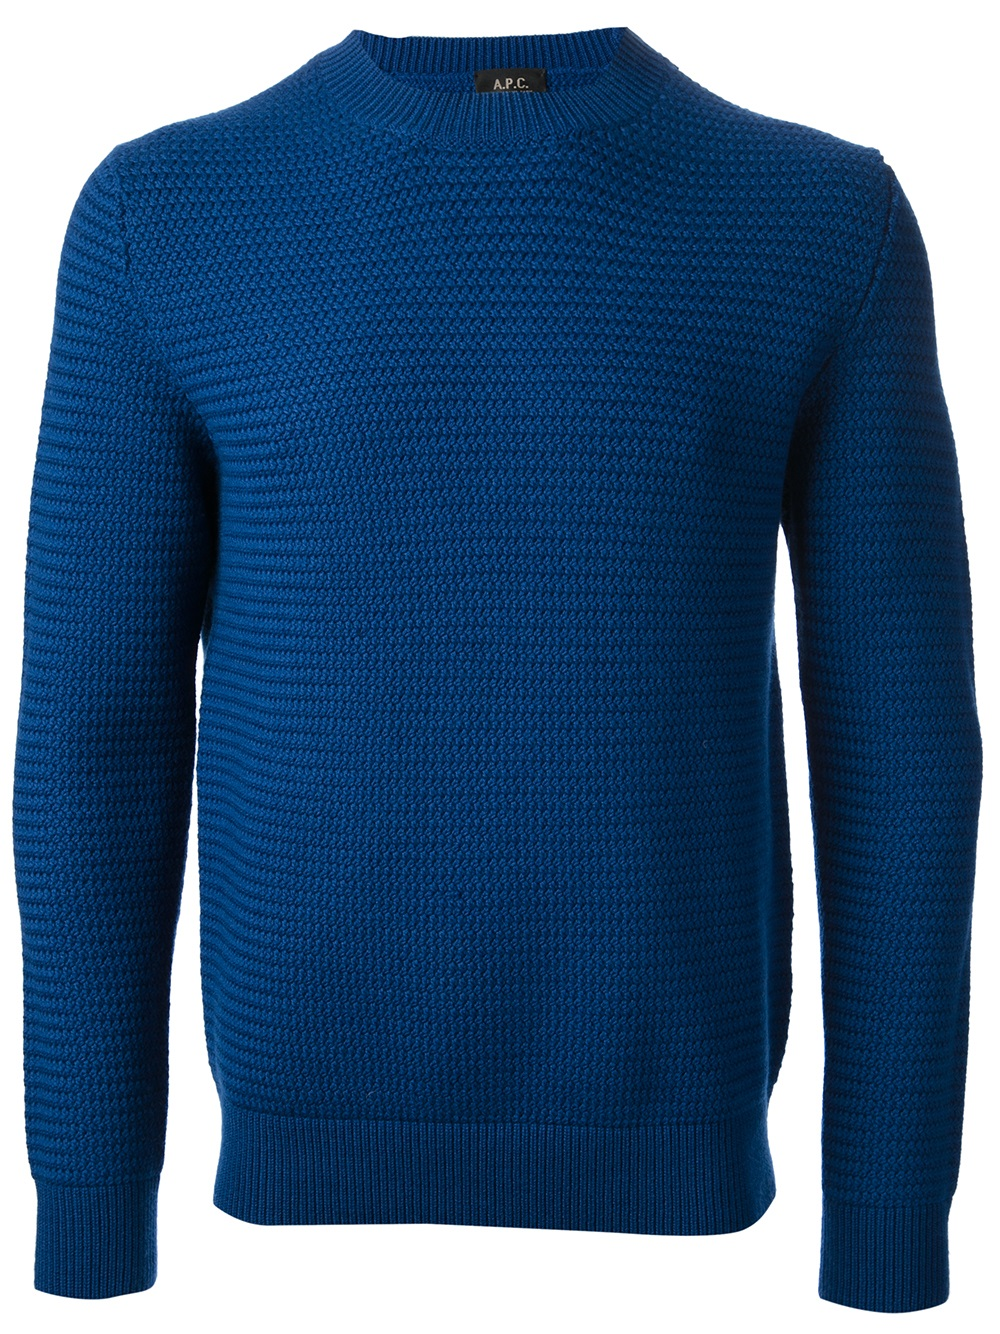 A.p.c. Knit Sweater in Blue for Men | Lyst